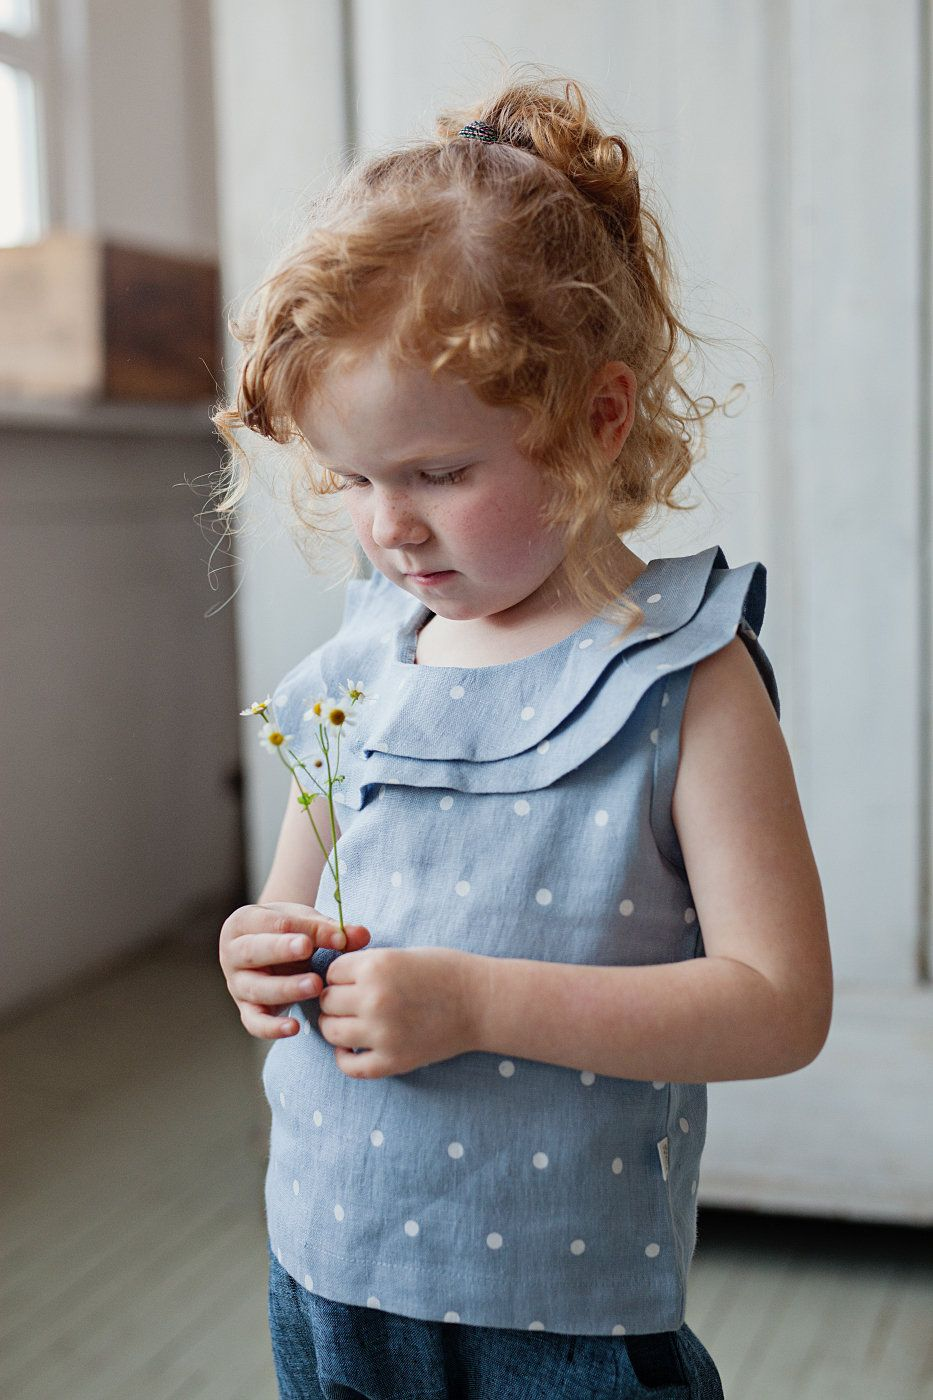 , Flower girl shirt, Blue baby tunic, Linen girl blouse, Linen girl tunic, Organic baby clothes, 1st birthday outfit, summer baby tunic, My Babies Blog 2020, My Babies Blog 2020